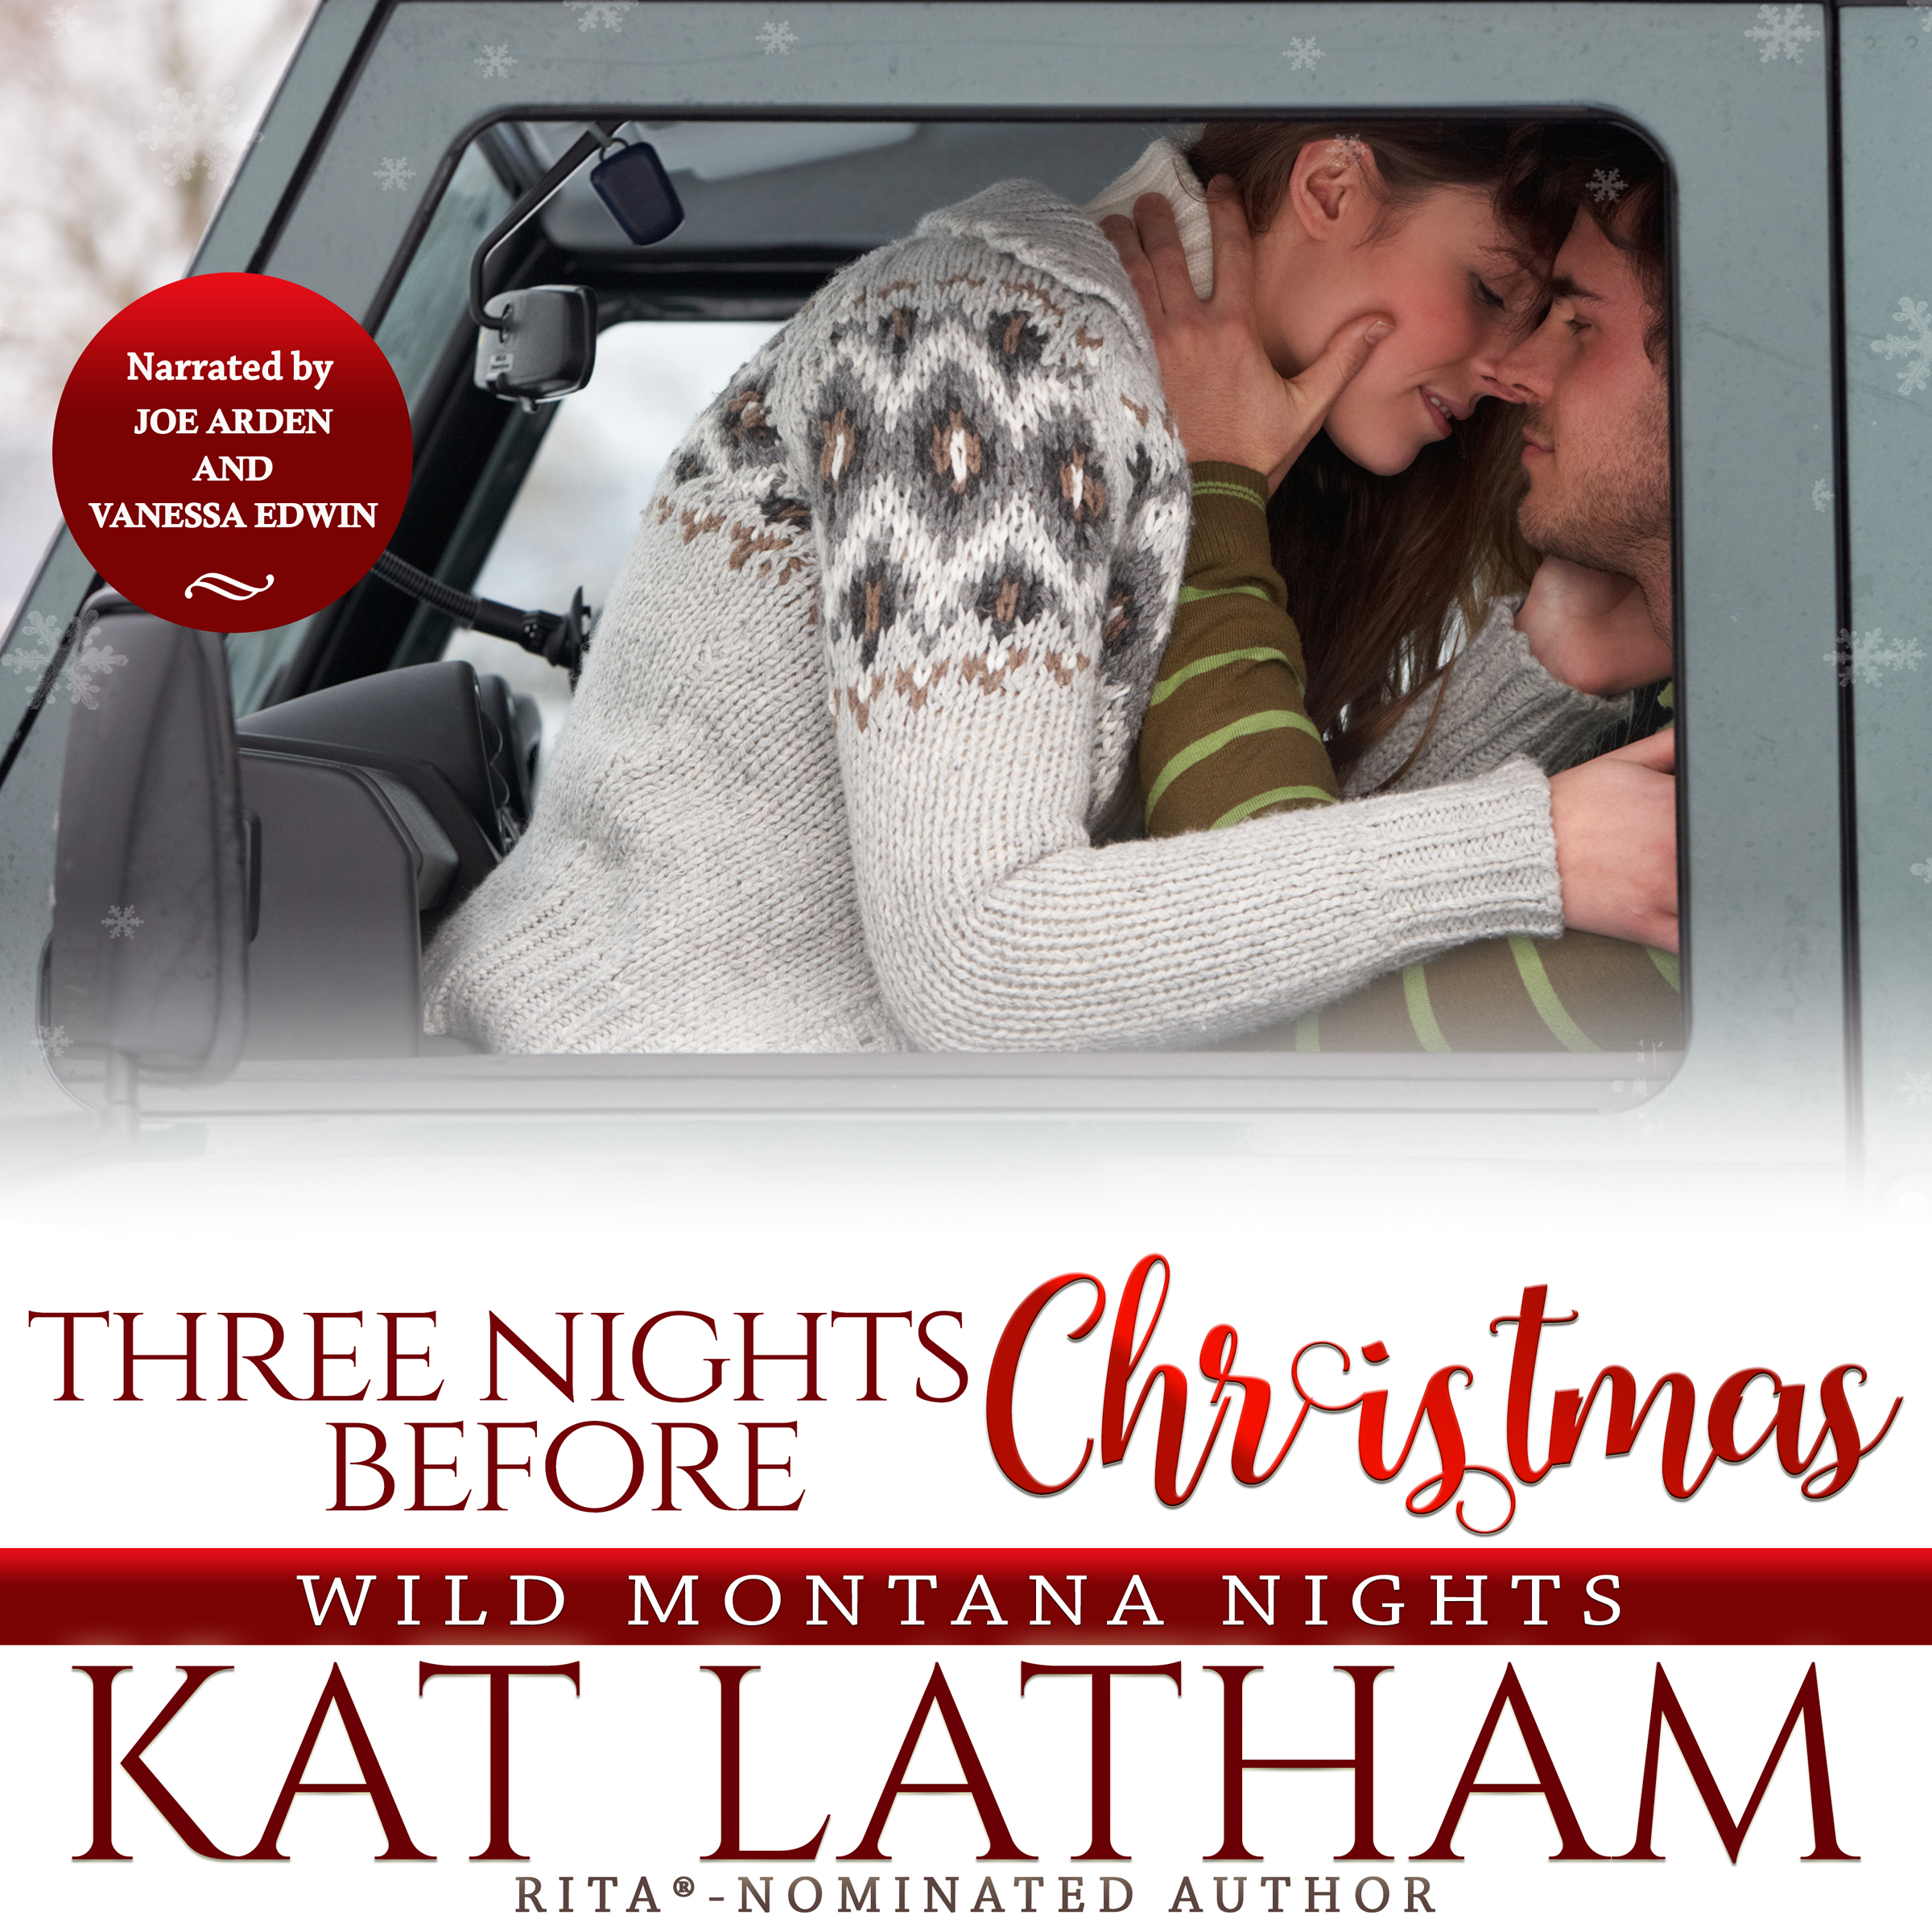 Three Nights Before Christmas by Kat Latham audiobook cover, performed by Vanessa Edwin and Joe Arden